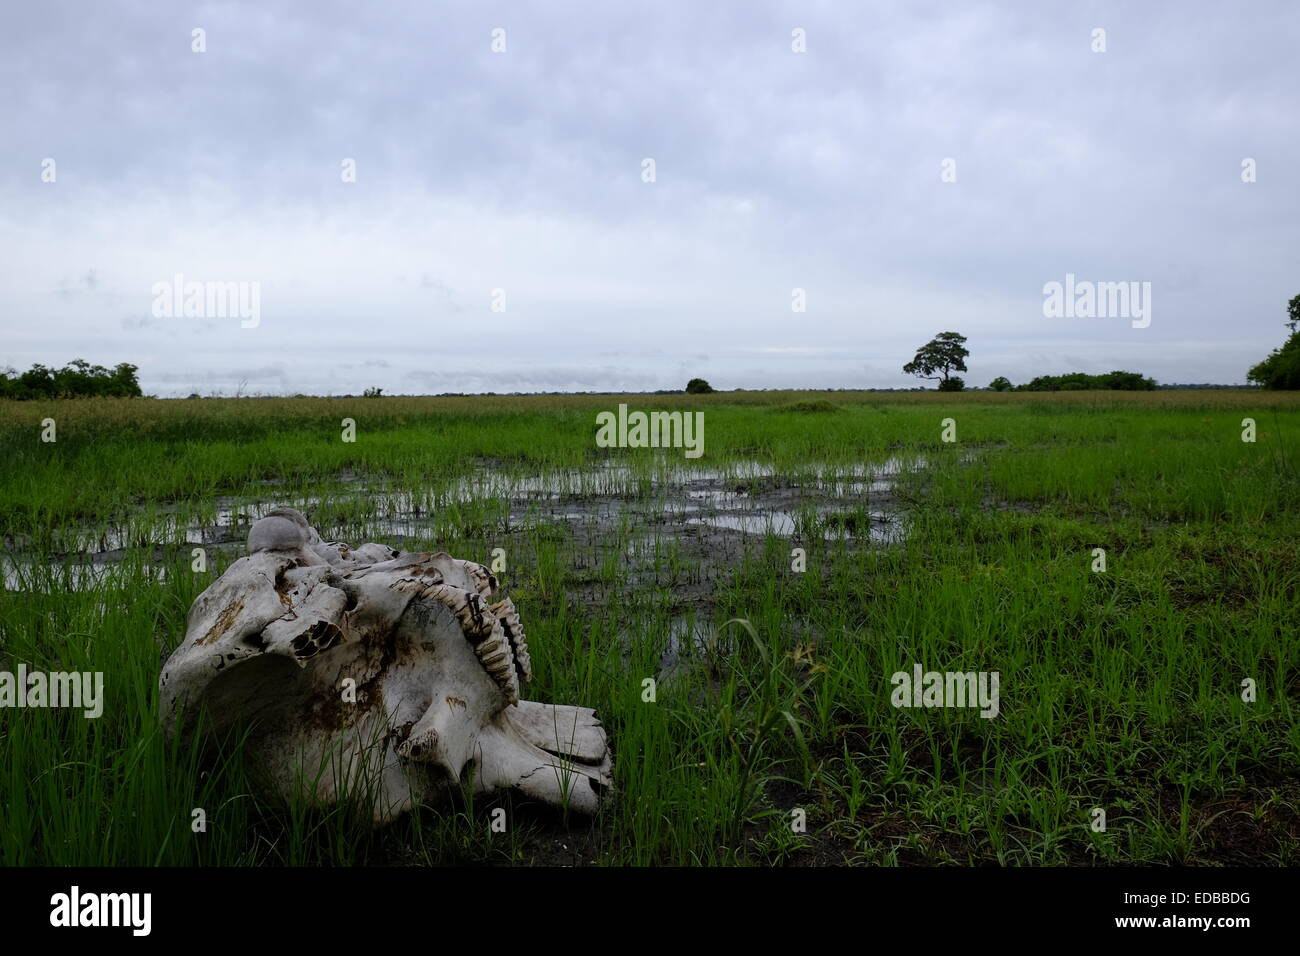 Elephant skeleton with the skull and bones lie scattered on the ground whilst a rainstorm gathers in the distance - Stock Image